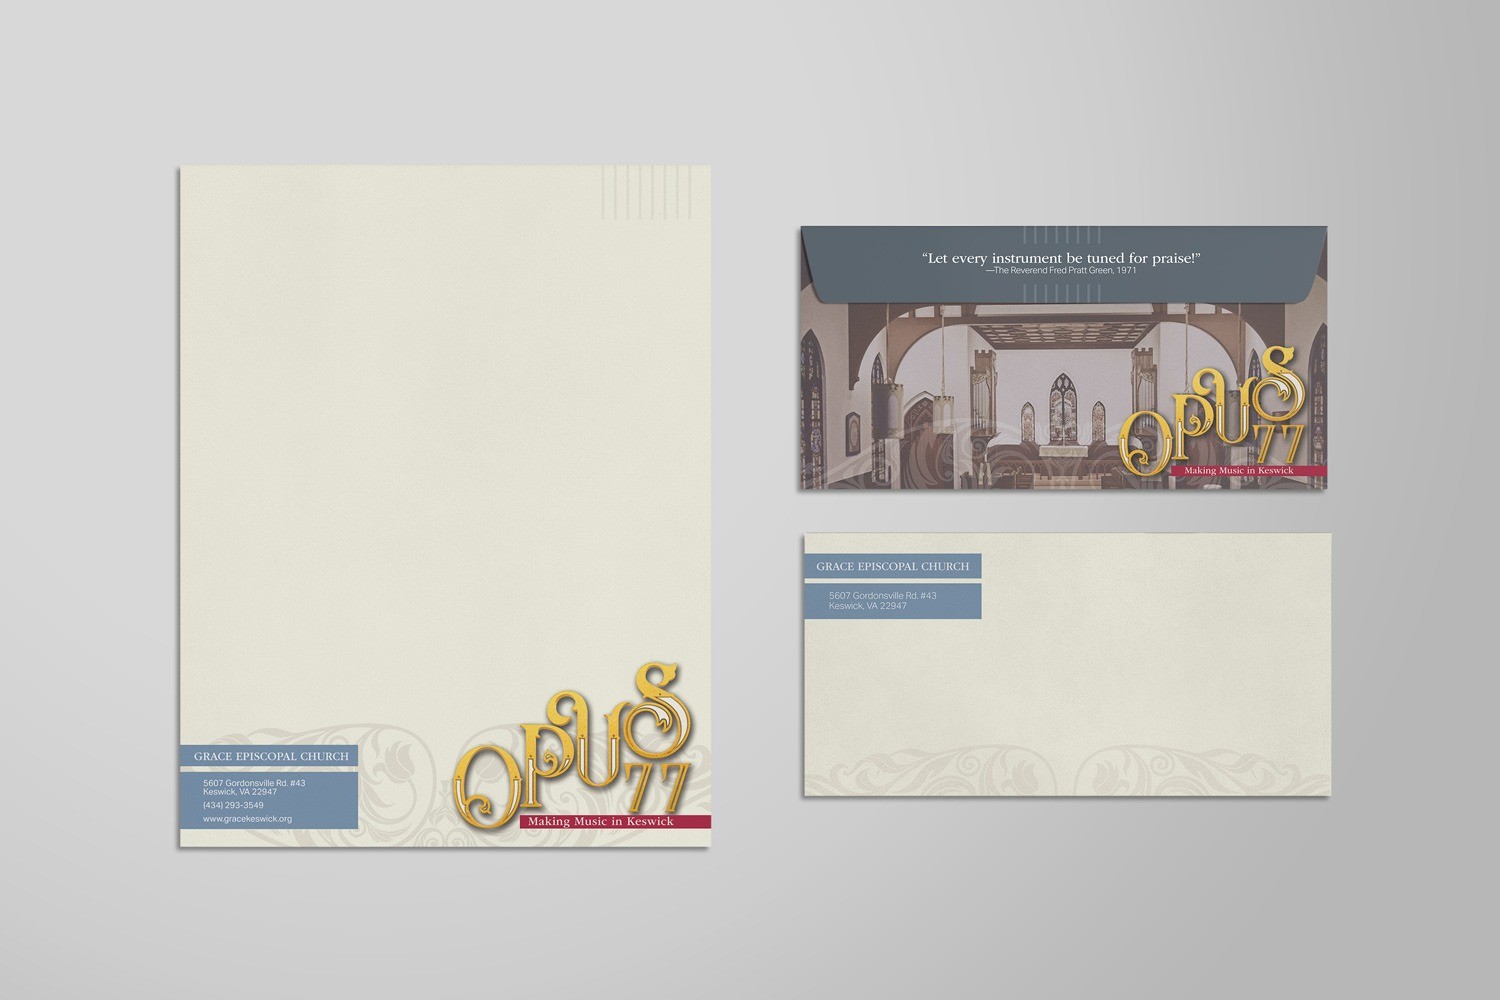 Church Capital Campaign Letterhead examples ideas